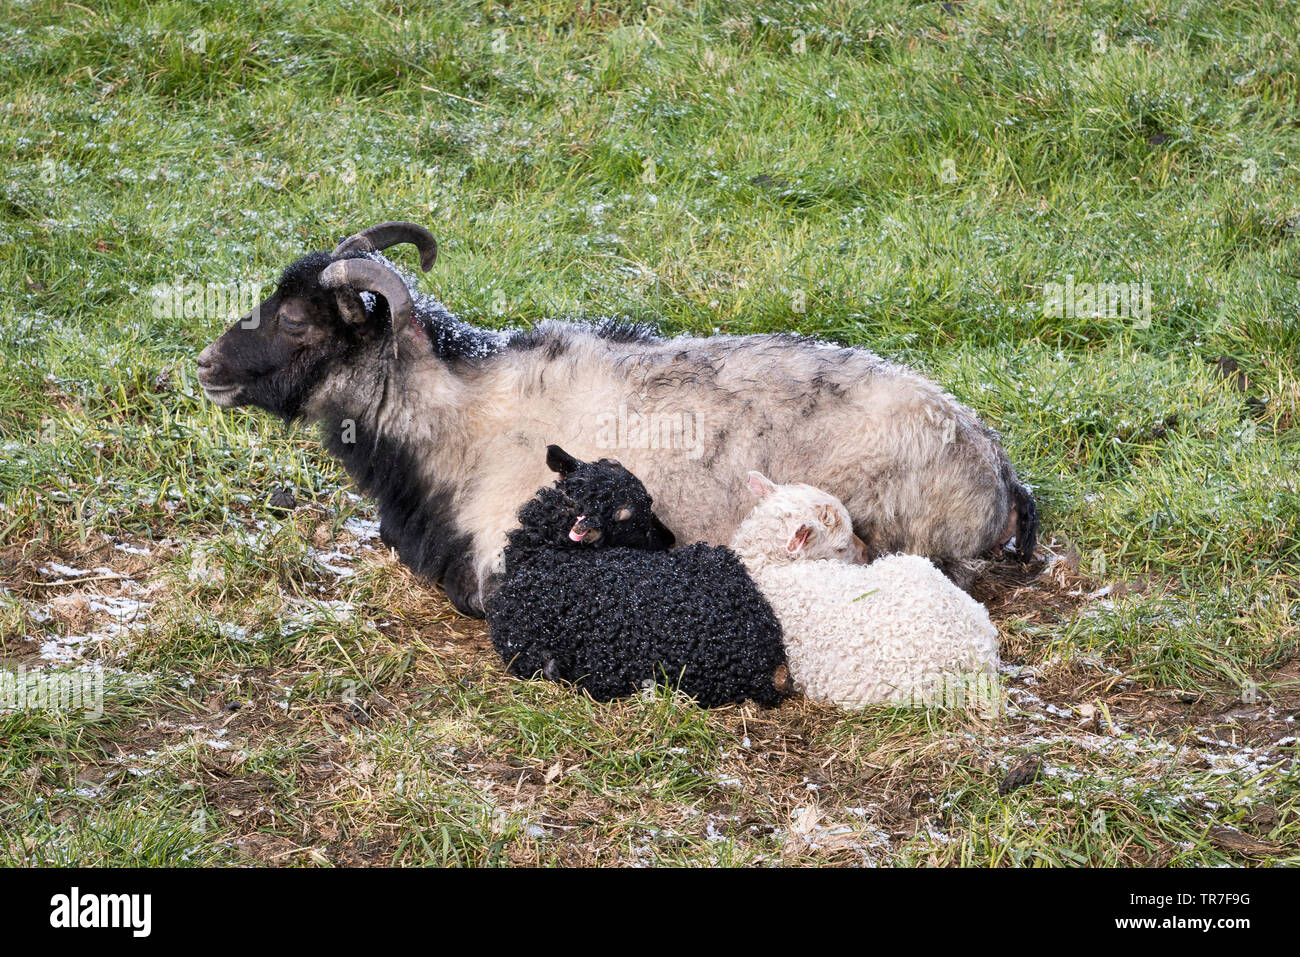 Northern Iceland, in May. A black and a white lamb sheltering from a spring hailstorm behind their mother - Stock Image